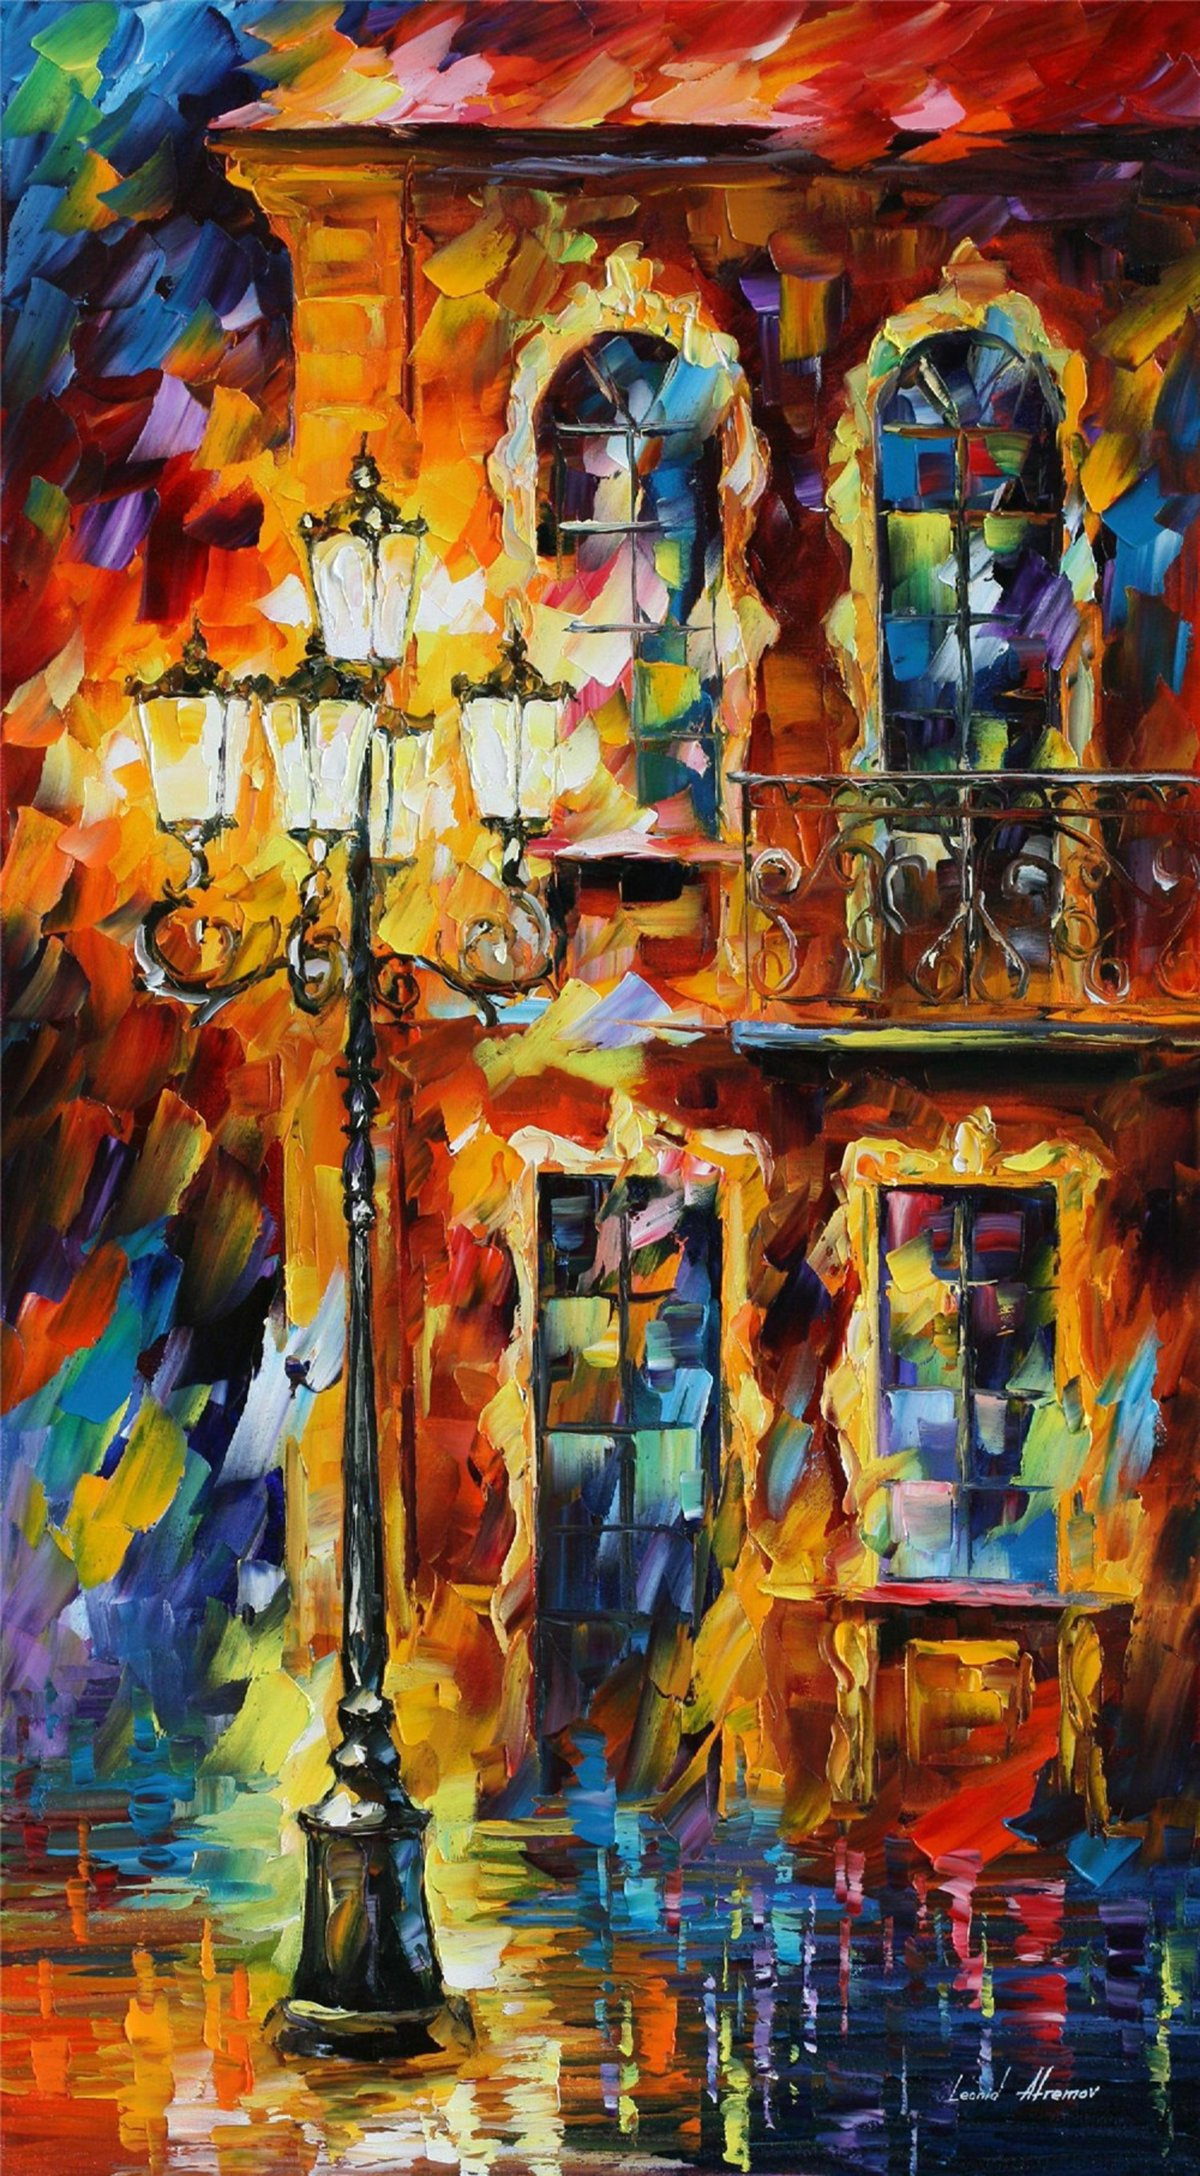 100% Hand Painted Oil Paintings Modern Abstract Oil Painting on Canvas Buildings under Street Lights Home Wall Decor (24X44 Inch, Oil Painting 2) by Bingo Arts